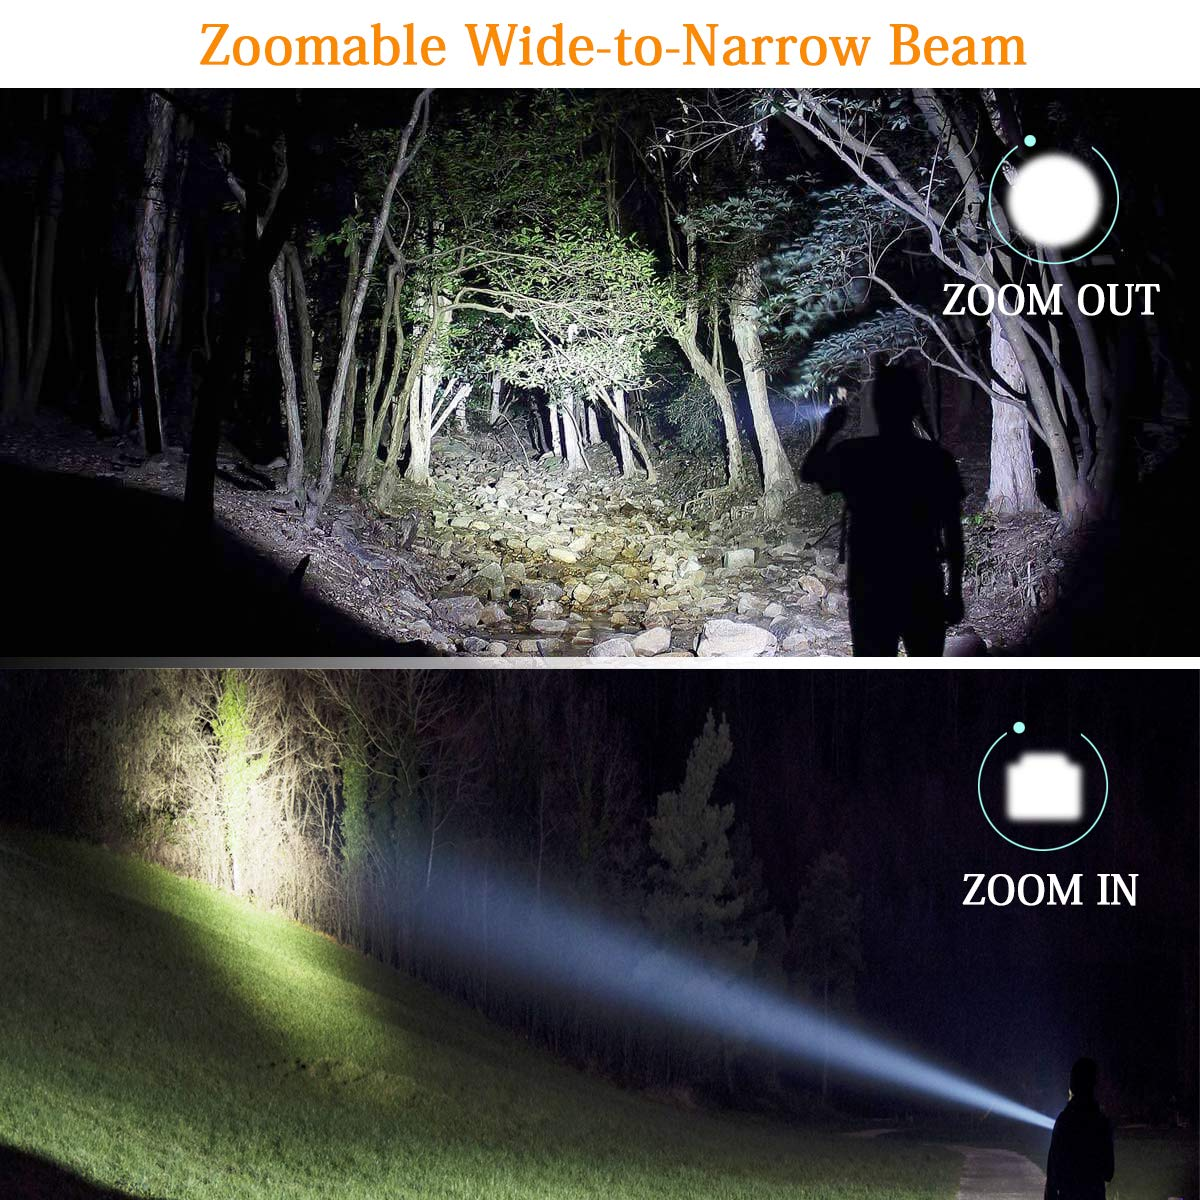 1500LM LED Flashlight, Mid Size Ultra Bright LED Flashlight, 5 Light Modes, Zoomable, Water Resistant, High Lumen Light Portable Handheld Flashlight for Home, Camping, Outdoor, Emergency